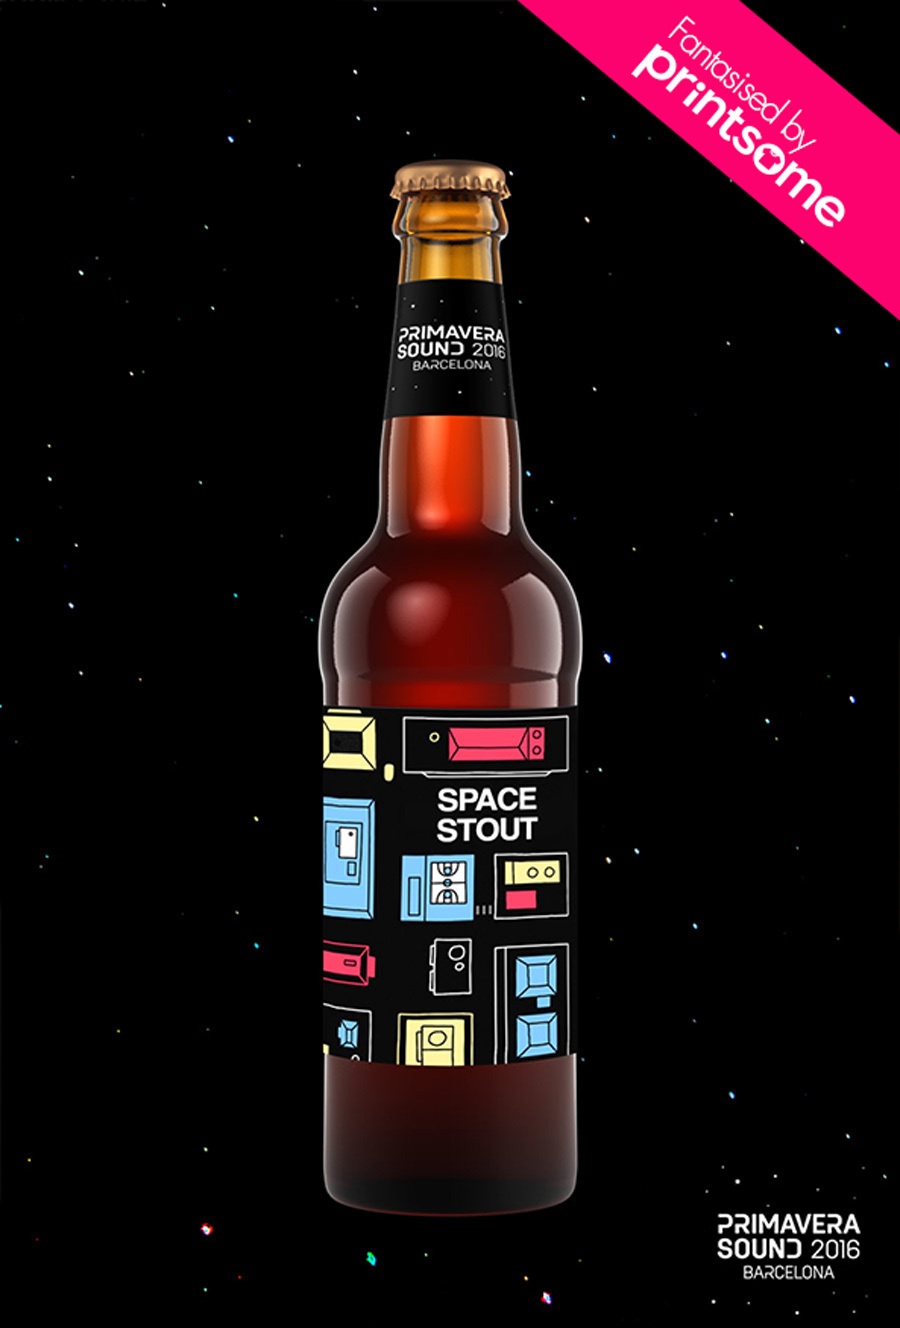 Primavera-sound-space-stout